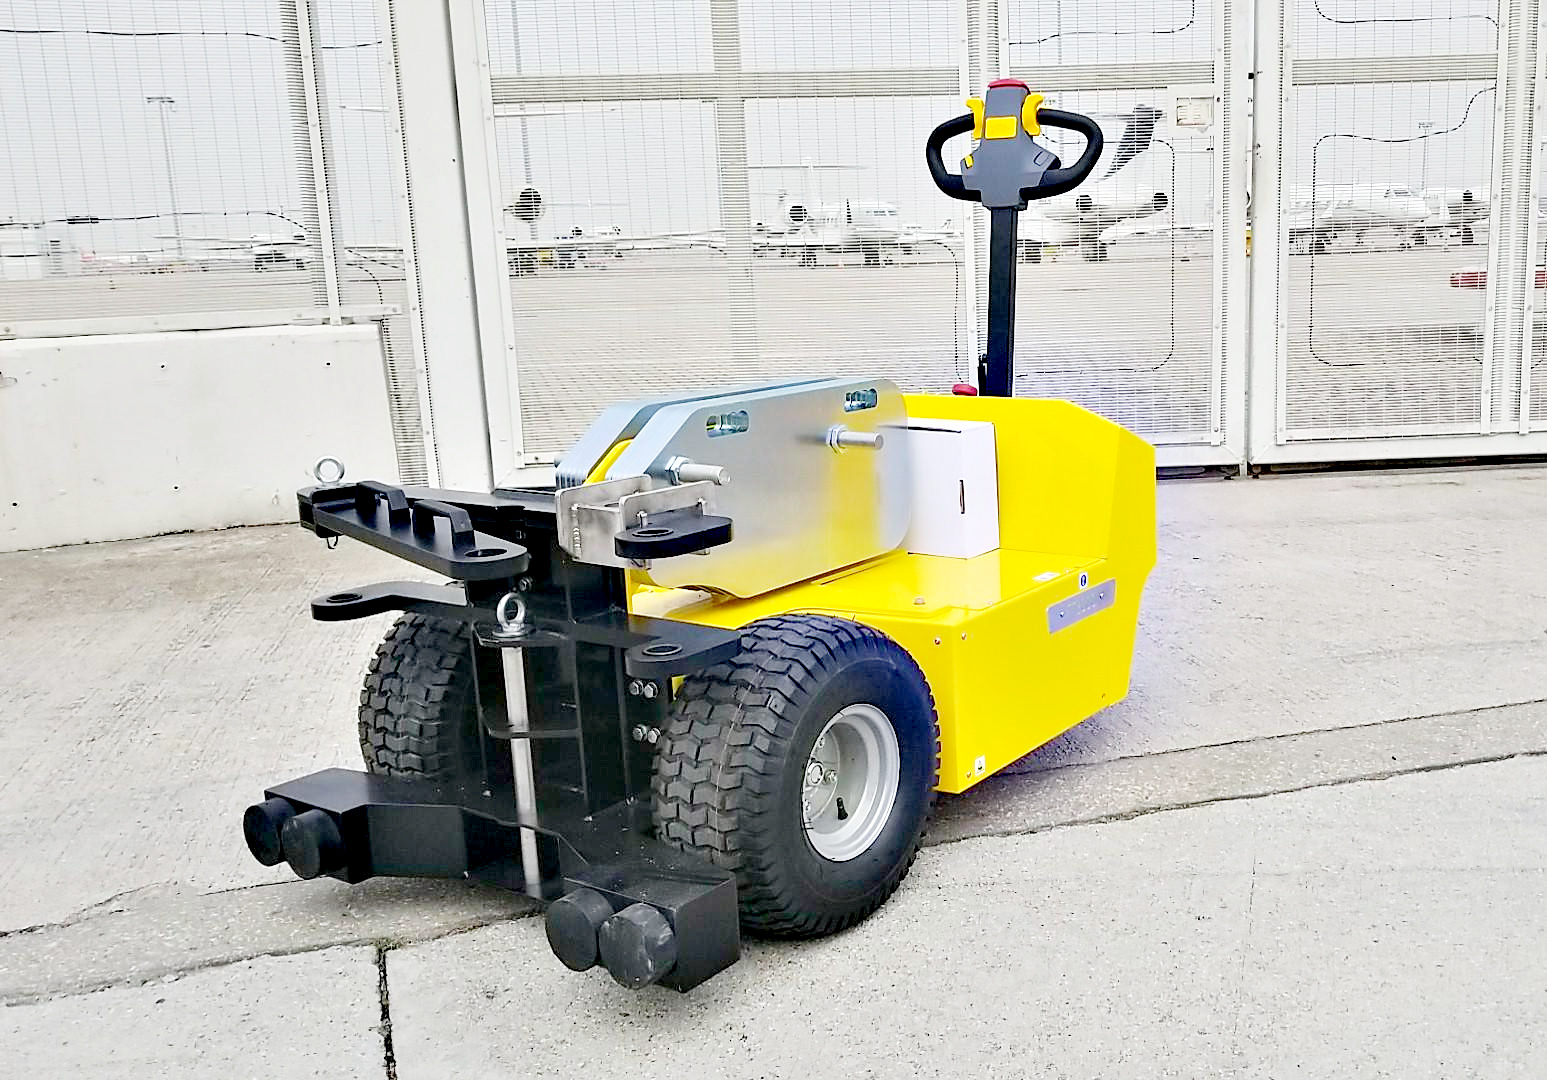 TT3000P FOR AIRPORT USE IN HONG KONG